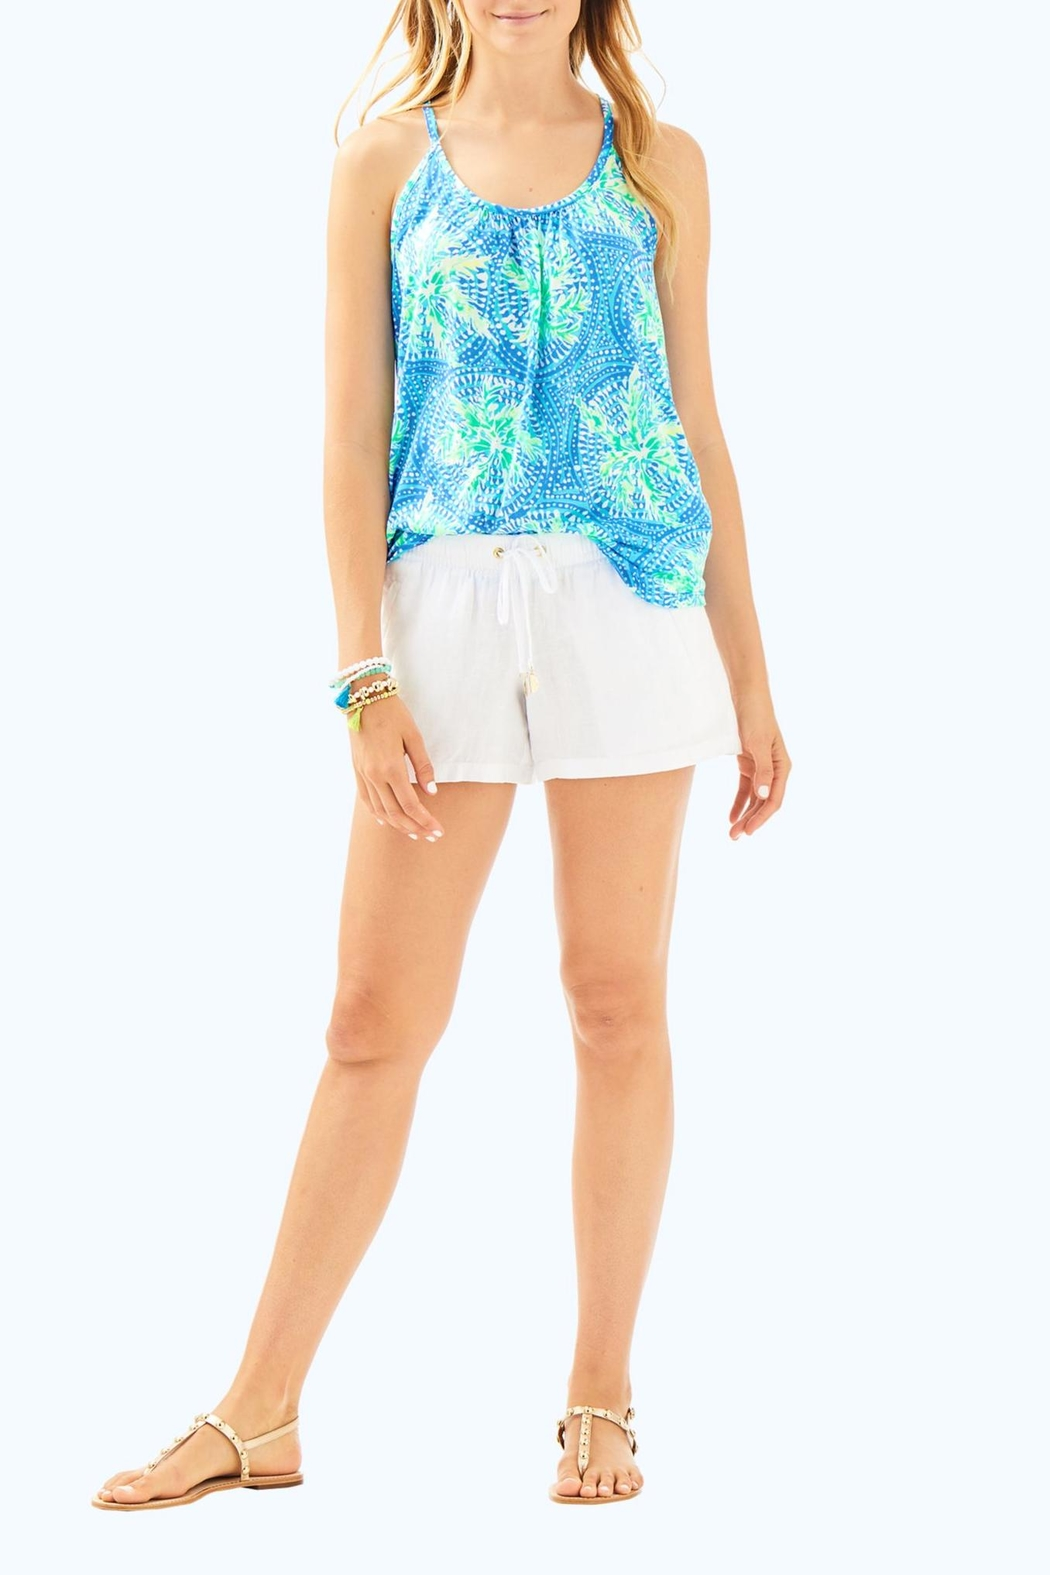 Lilly Pulitzer Lacy Tank Top - Side Cropped Image